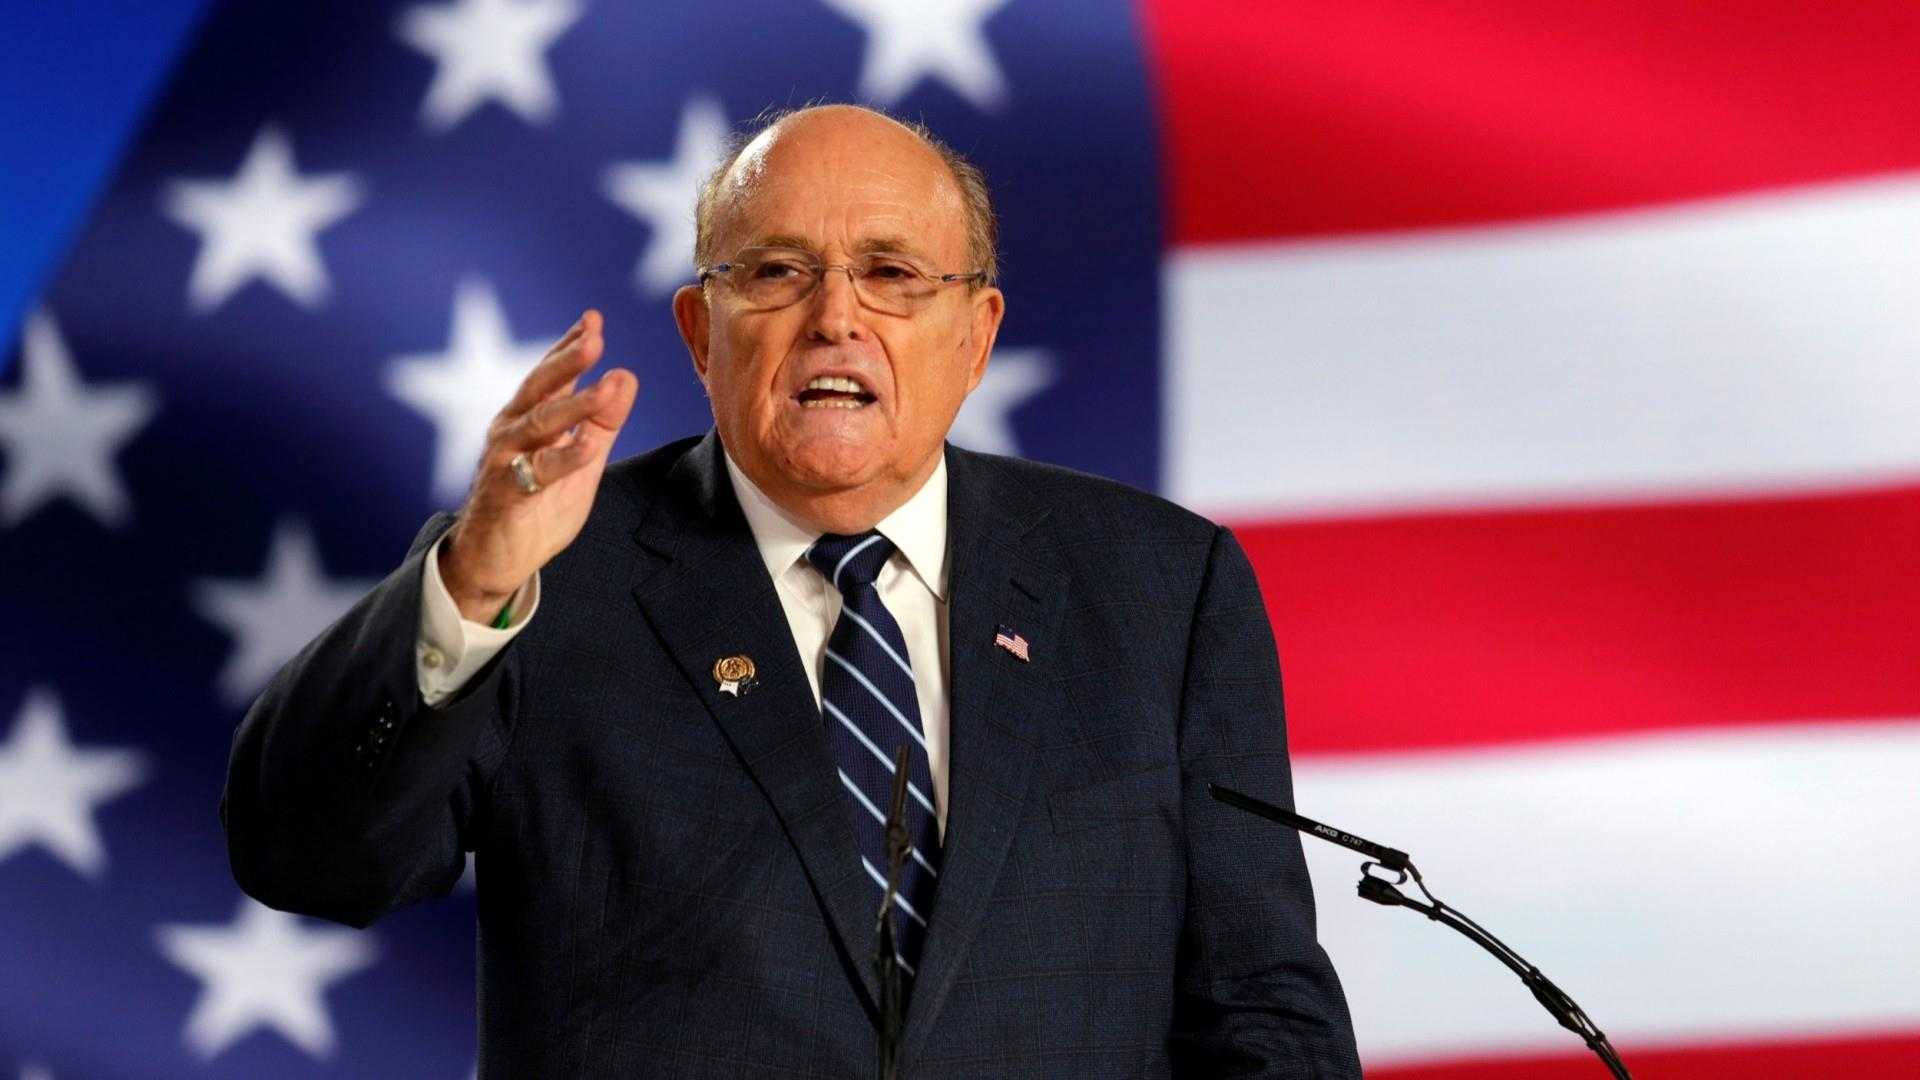 Florida businessmen who helped Giuliani in Ukraine arrested on campaign finance charges